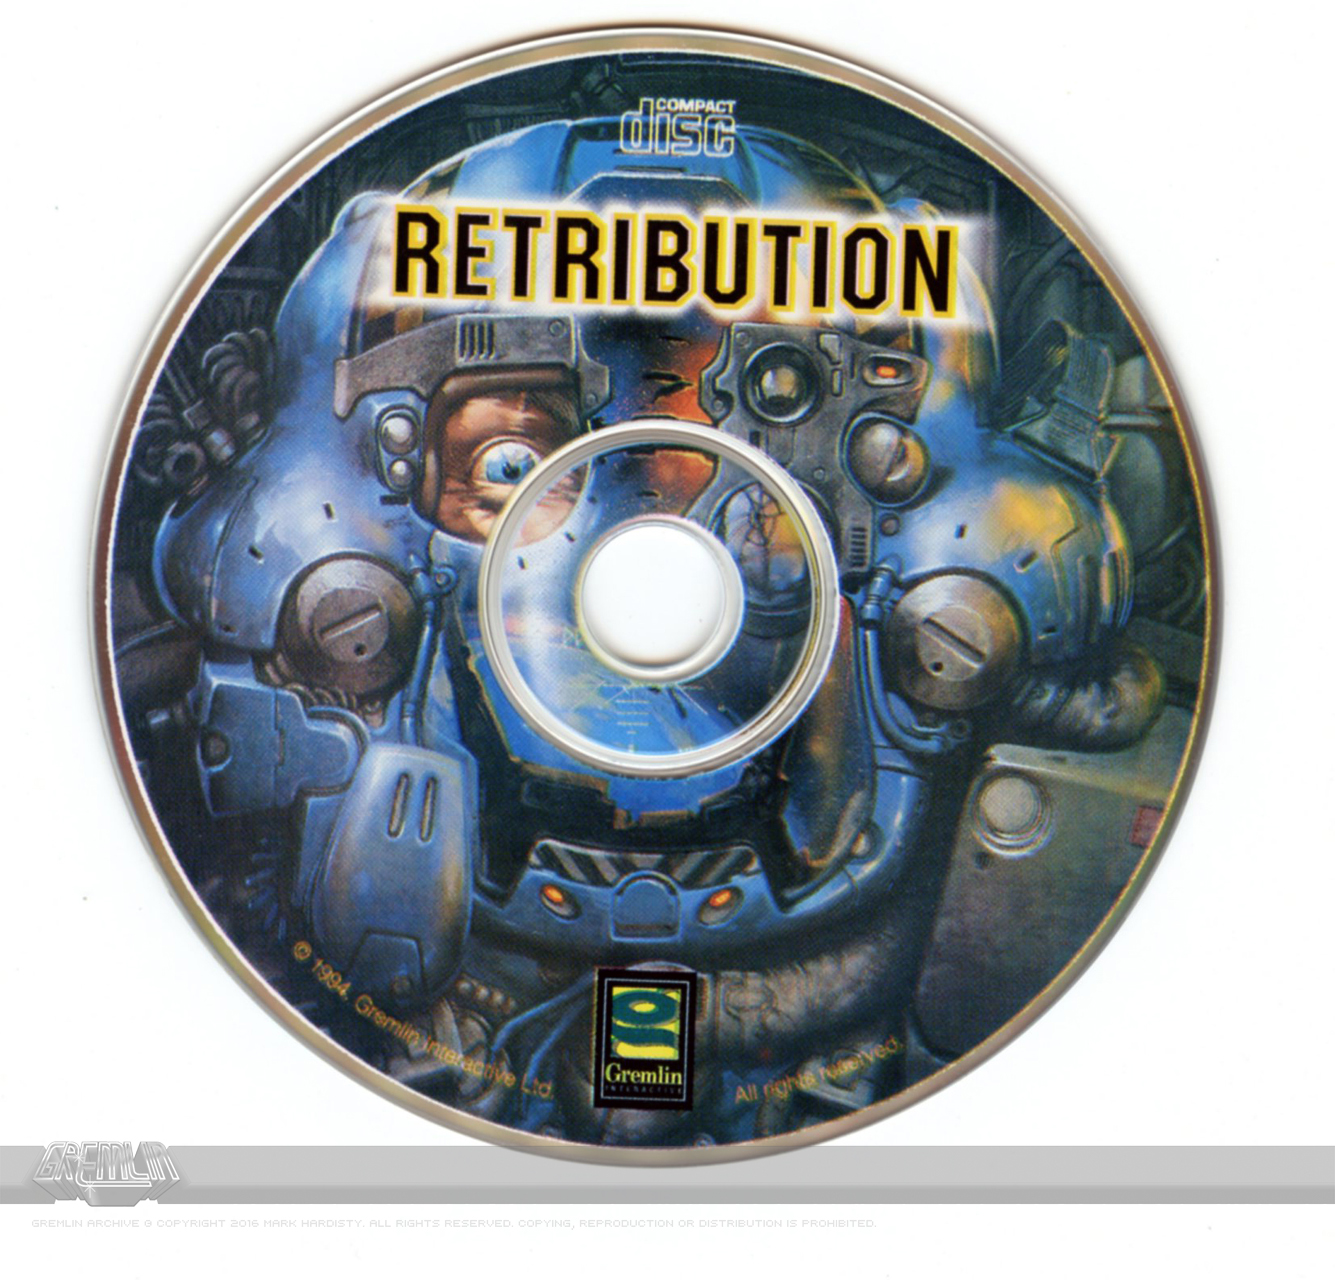 Retribution CD